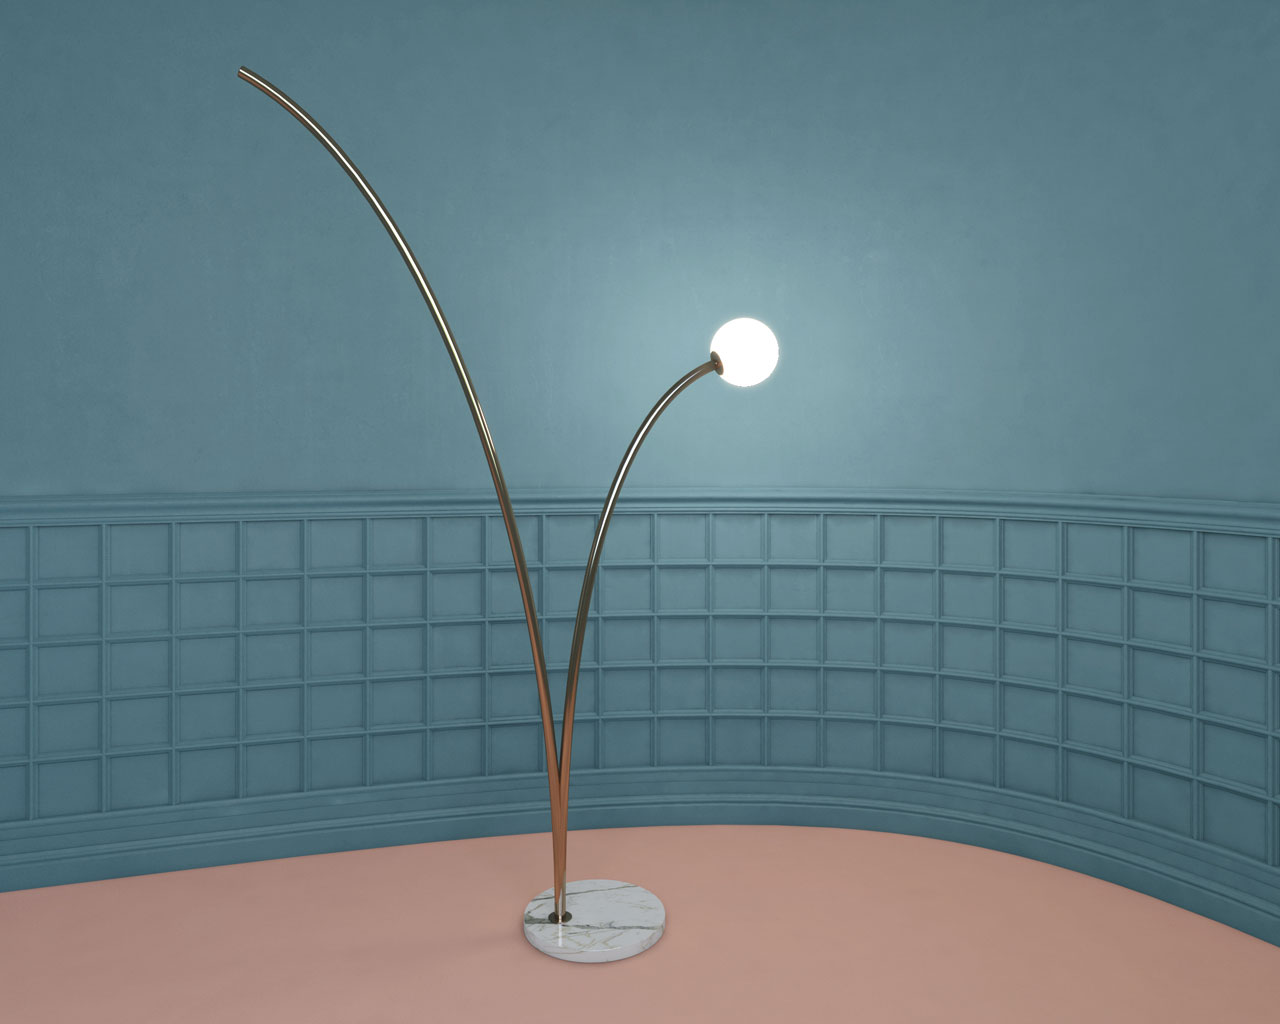 BALZO floor lamp by Studio Lievito. A curved metal tube simulates the ascending and descending parabola of a sphere during a rebound.